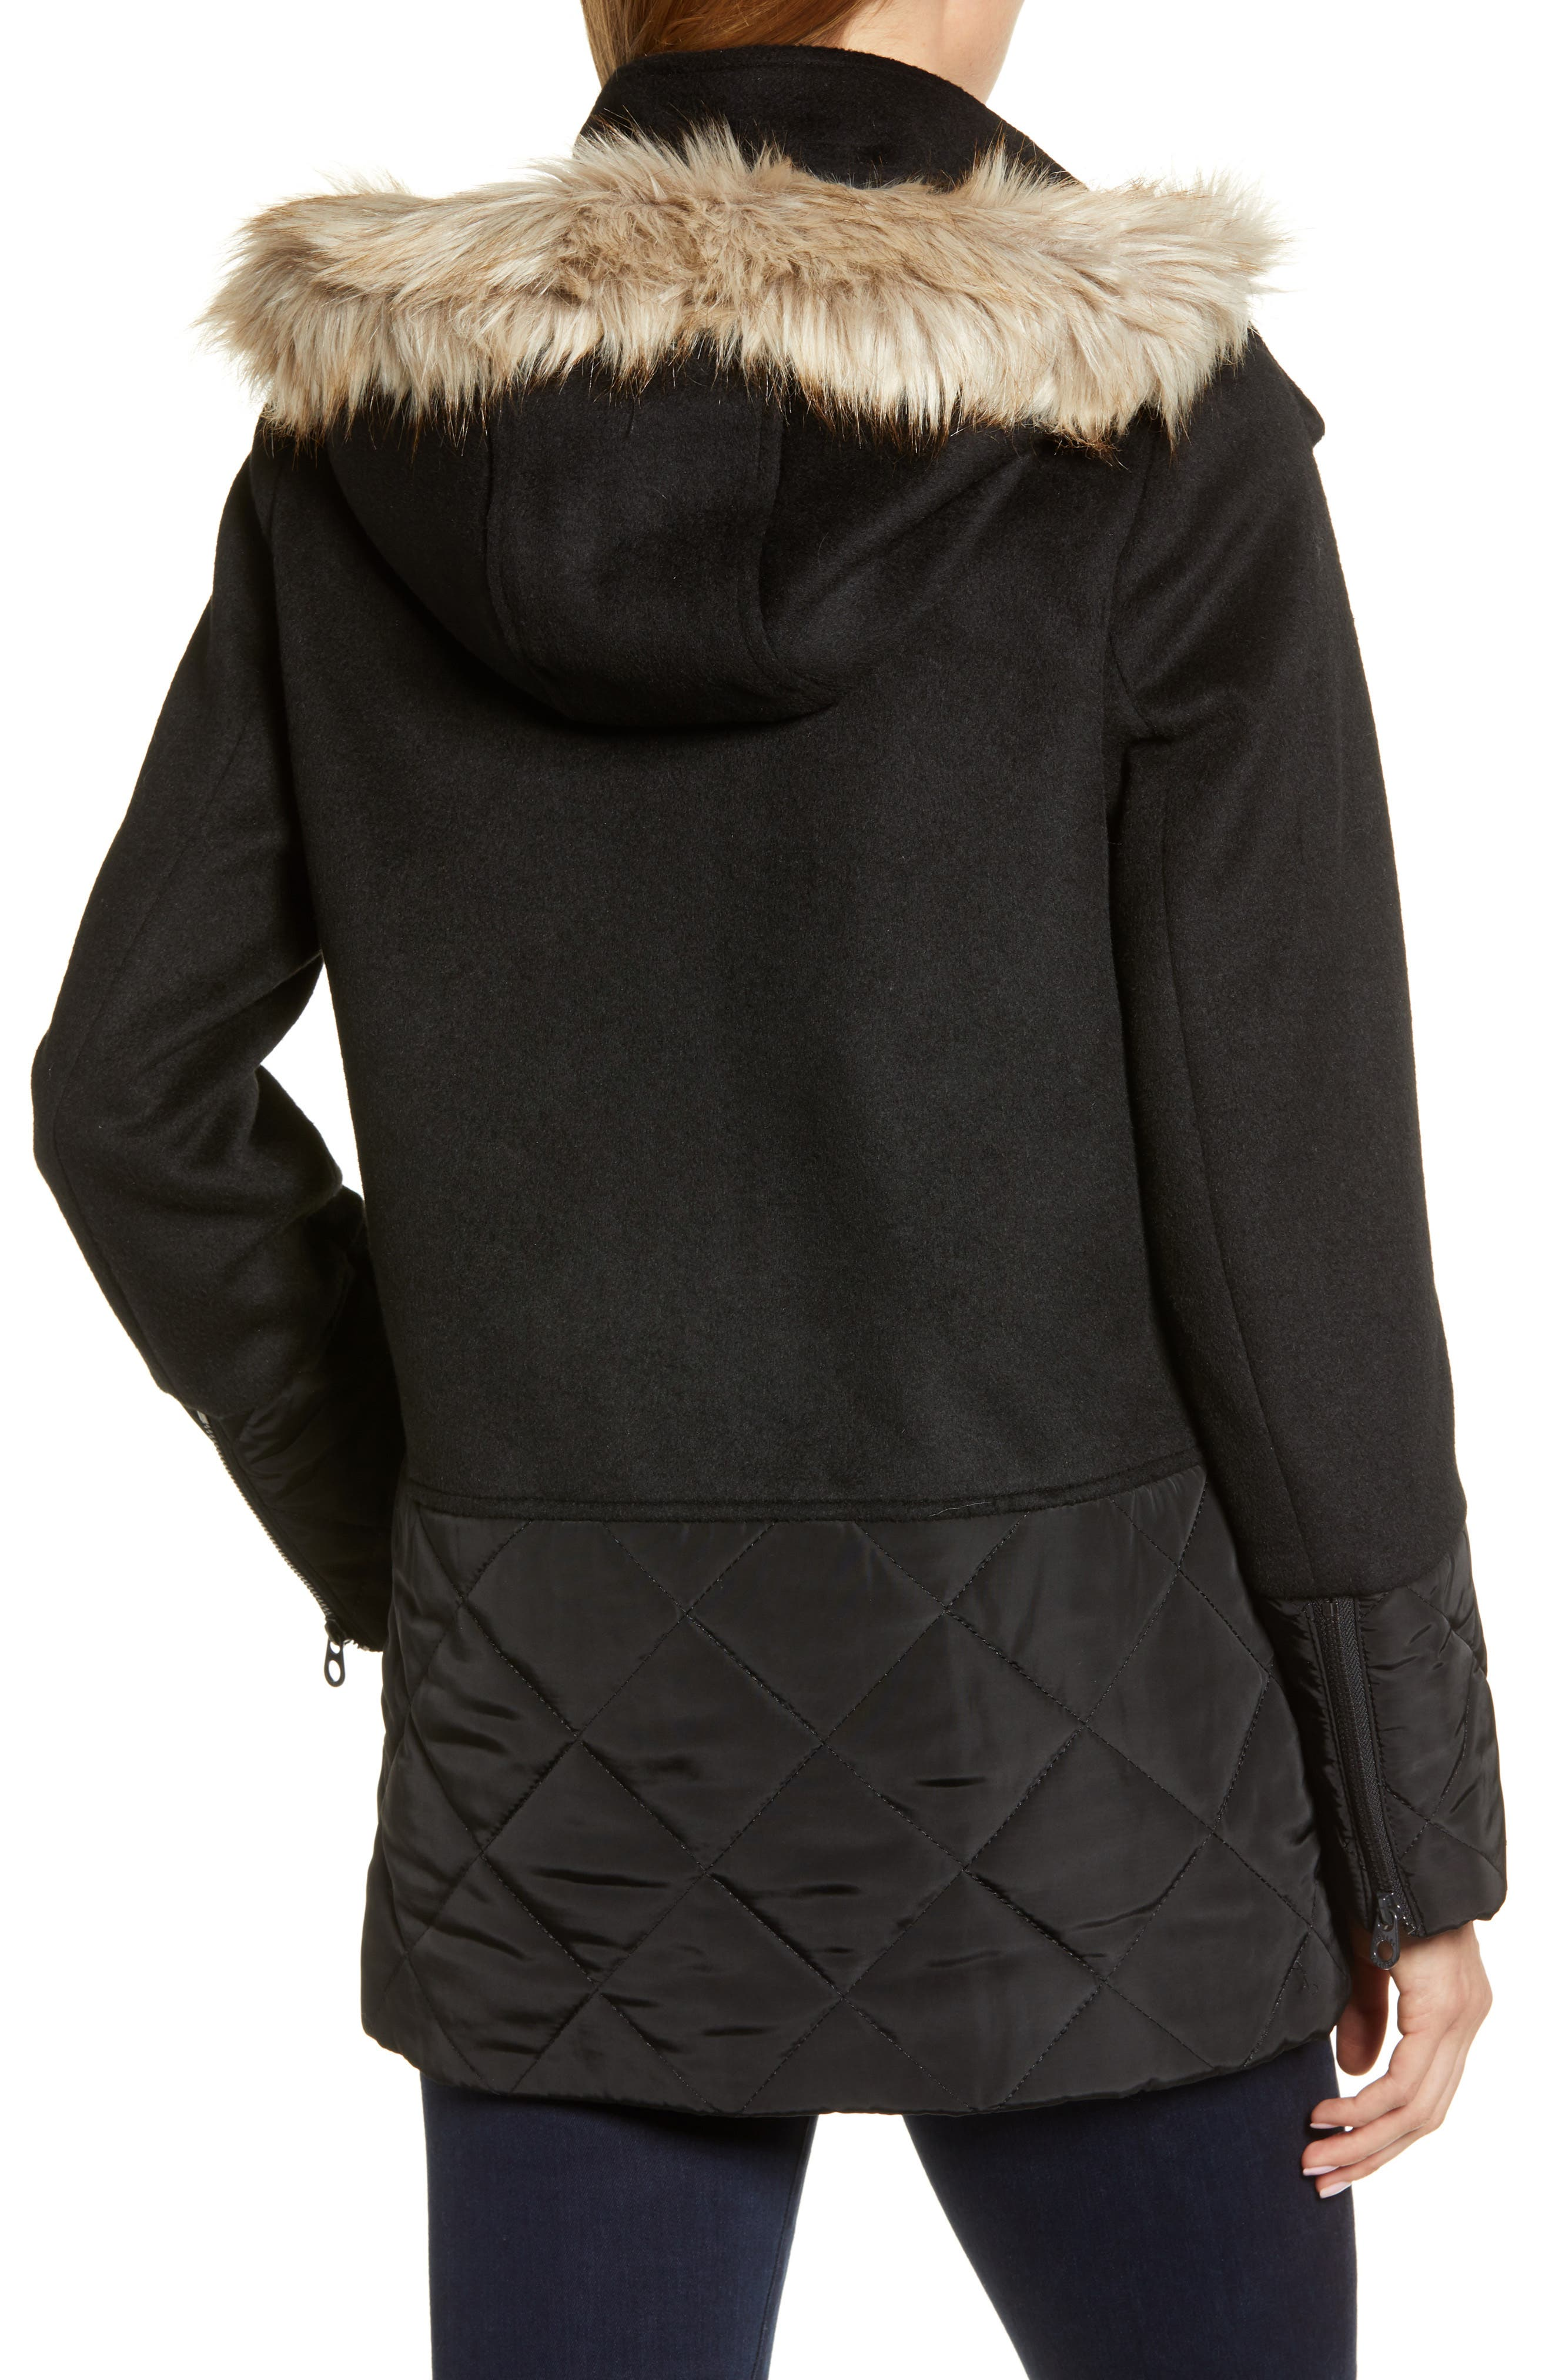 Mixed Texture Hooded Coat with Faux Fur Trim,                             Alternate thumbnail 2, color,                             BLACK